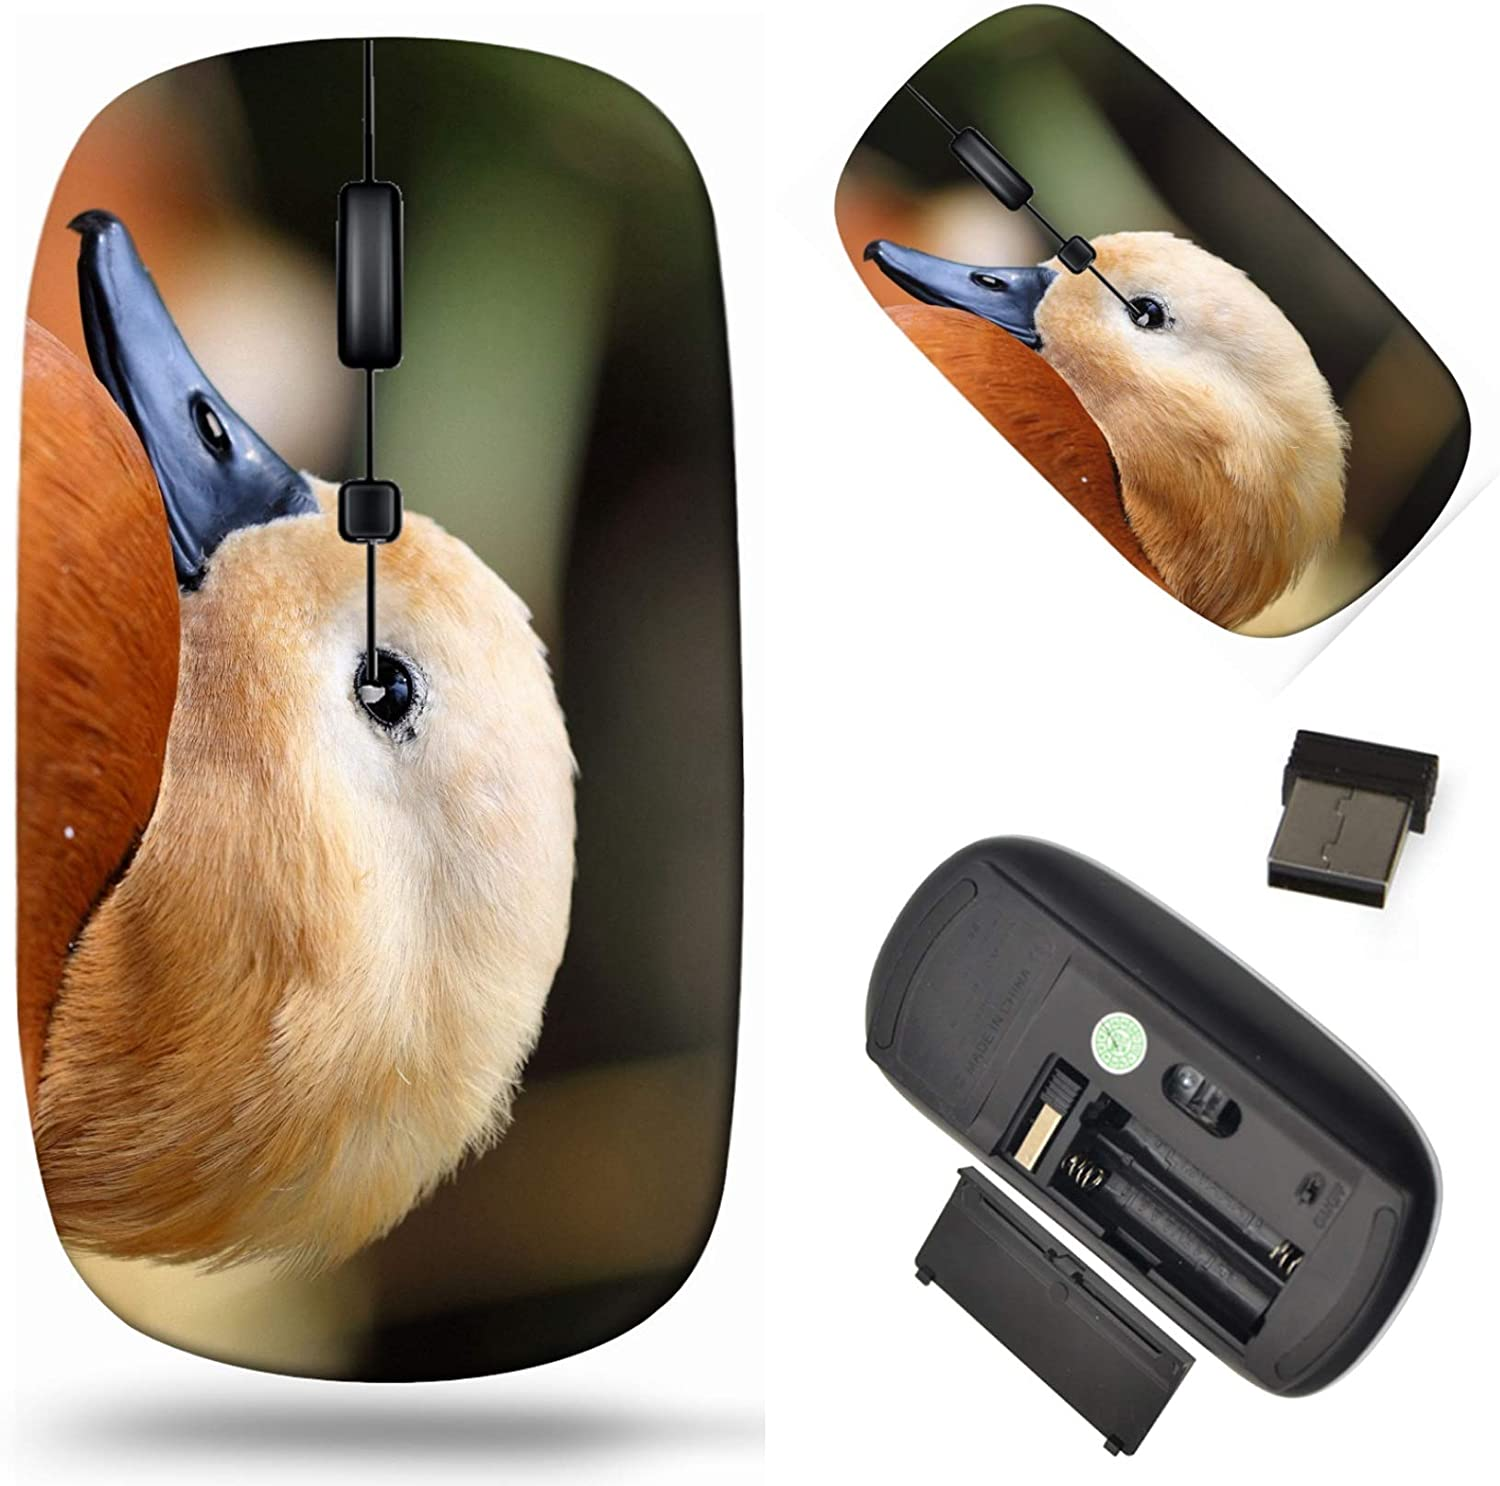 Wireless Computer Mouse 2.4G Mesa Mall with Recommended USB Receiver Laptop Cor